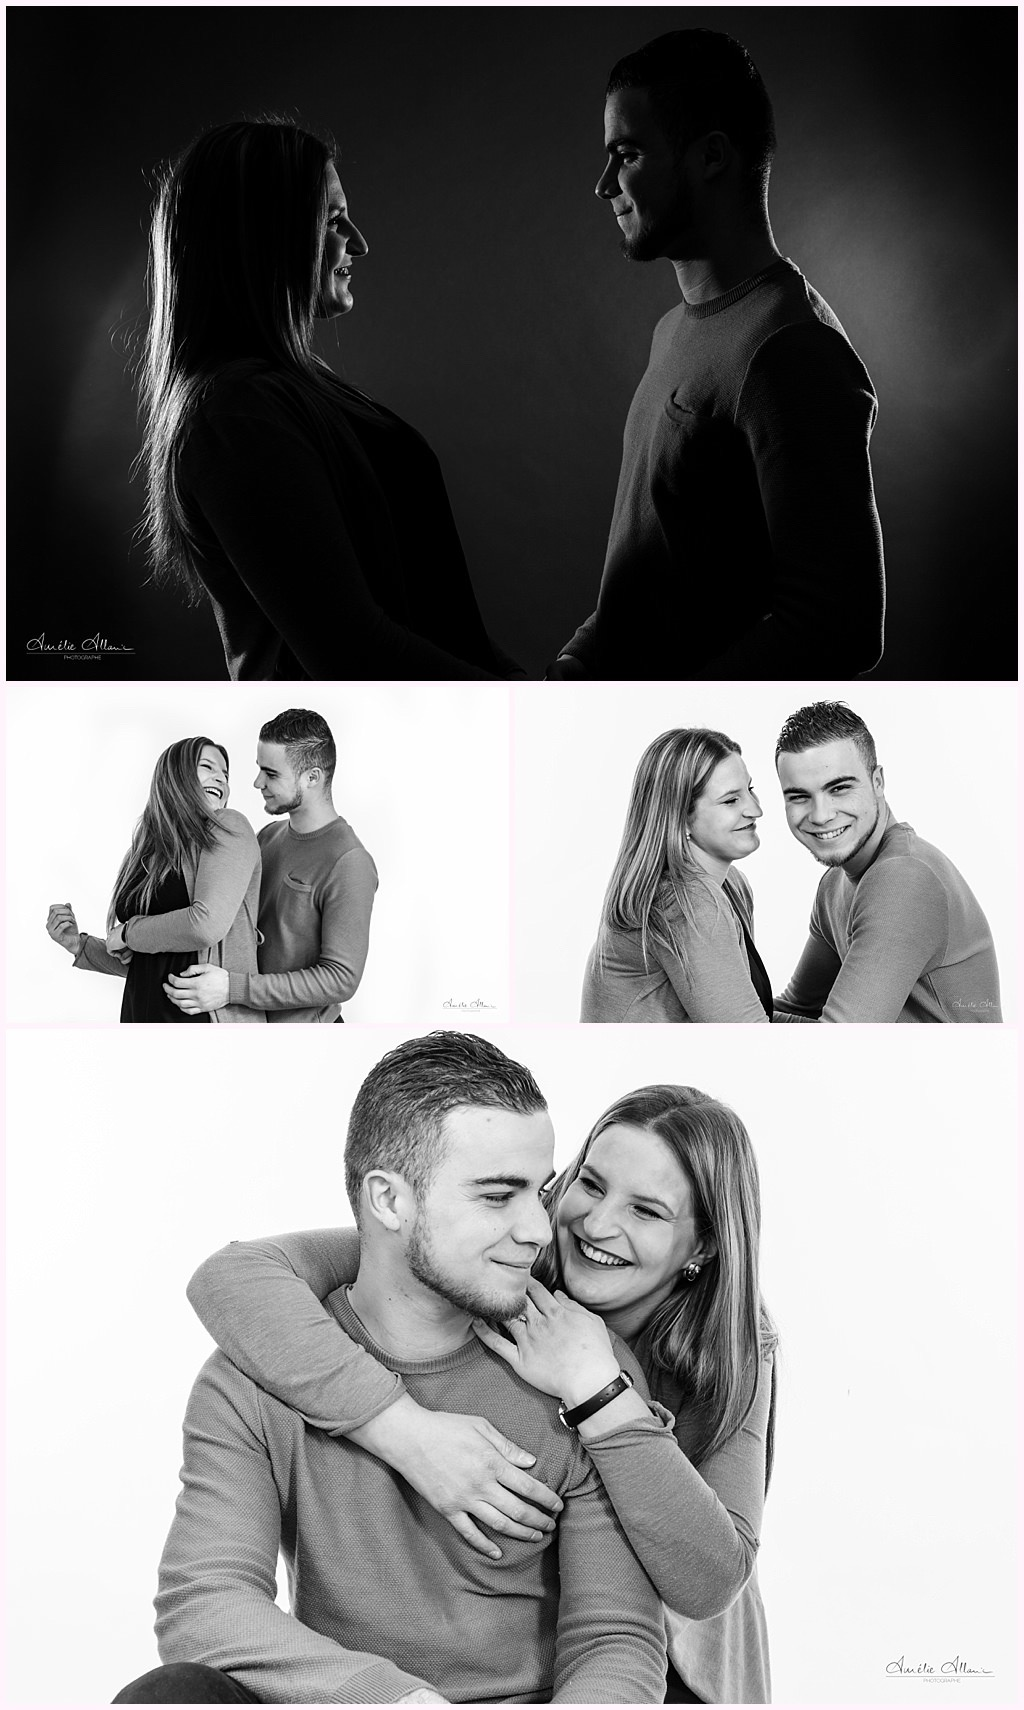 séance photo couple beloved session photographe studio pontcharra grenoble chambery aurelie allanic